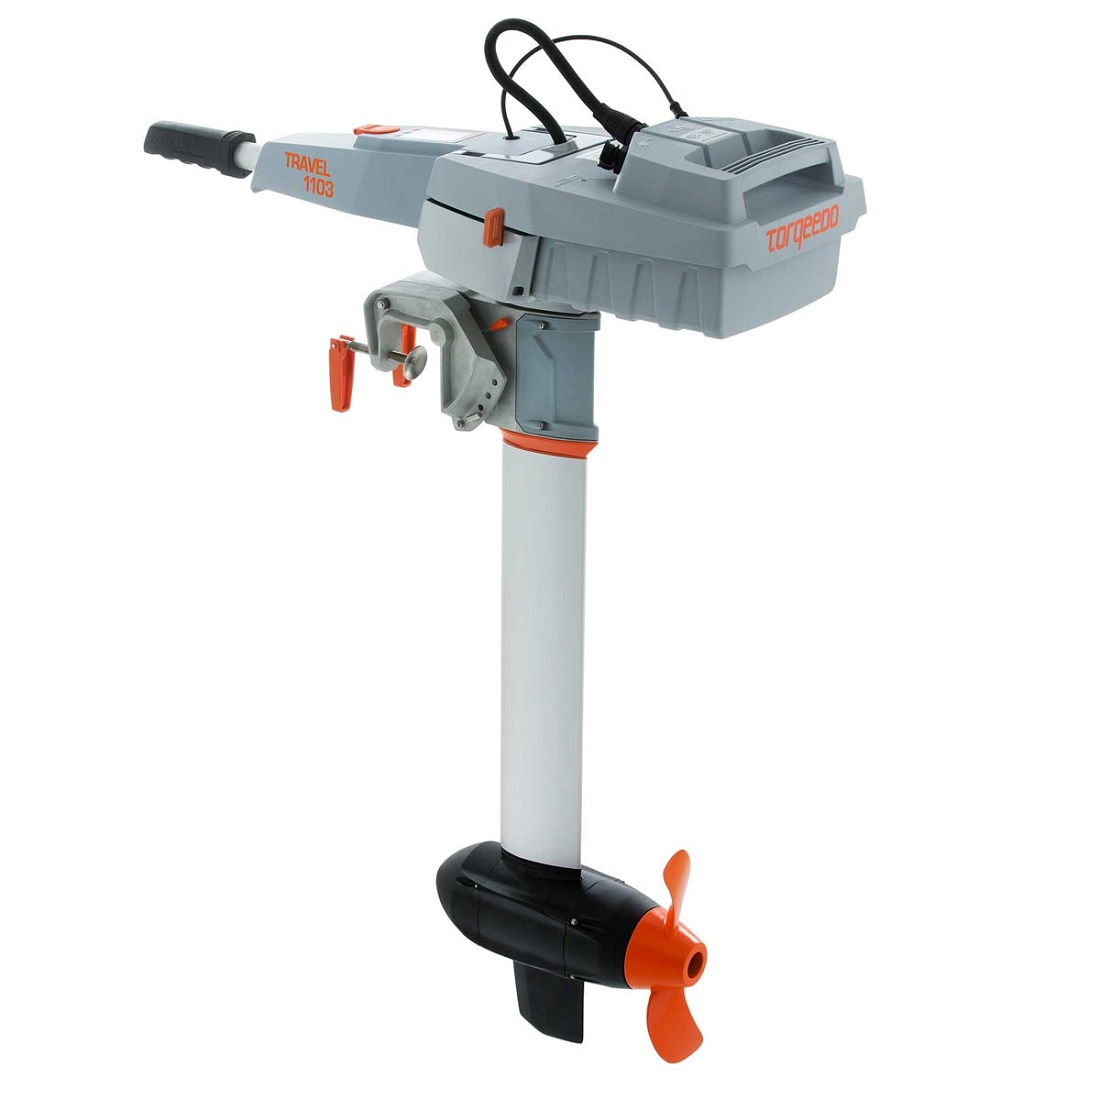 Torqeedo Travel 1103-C Electric Outboard Motor - Rear View